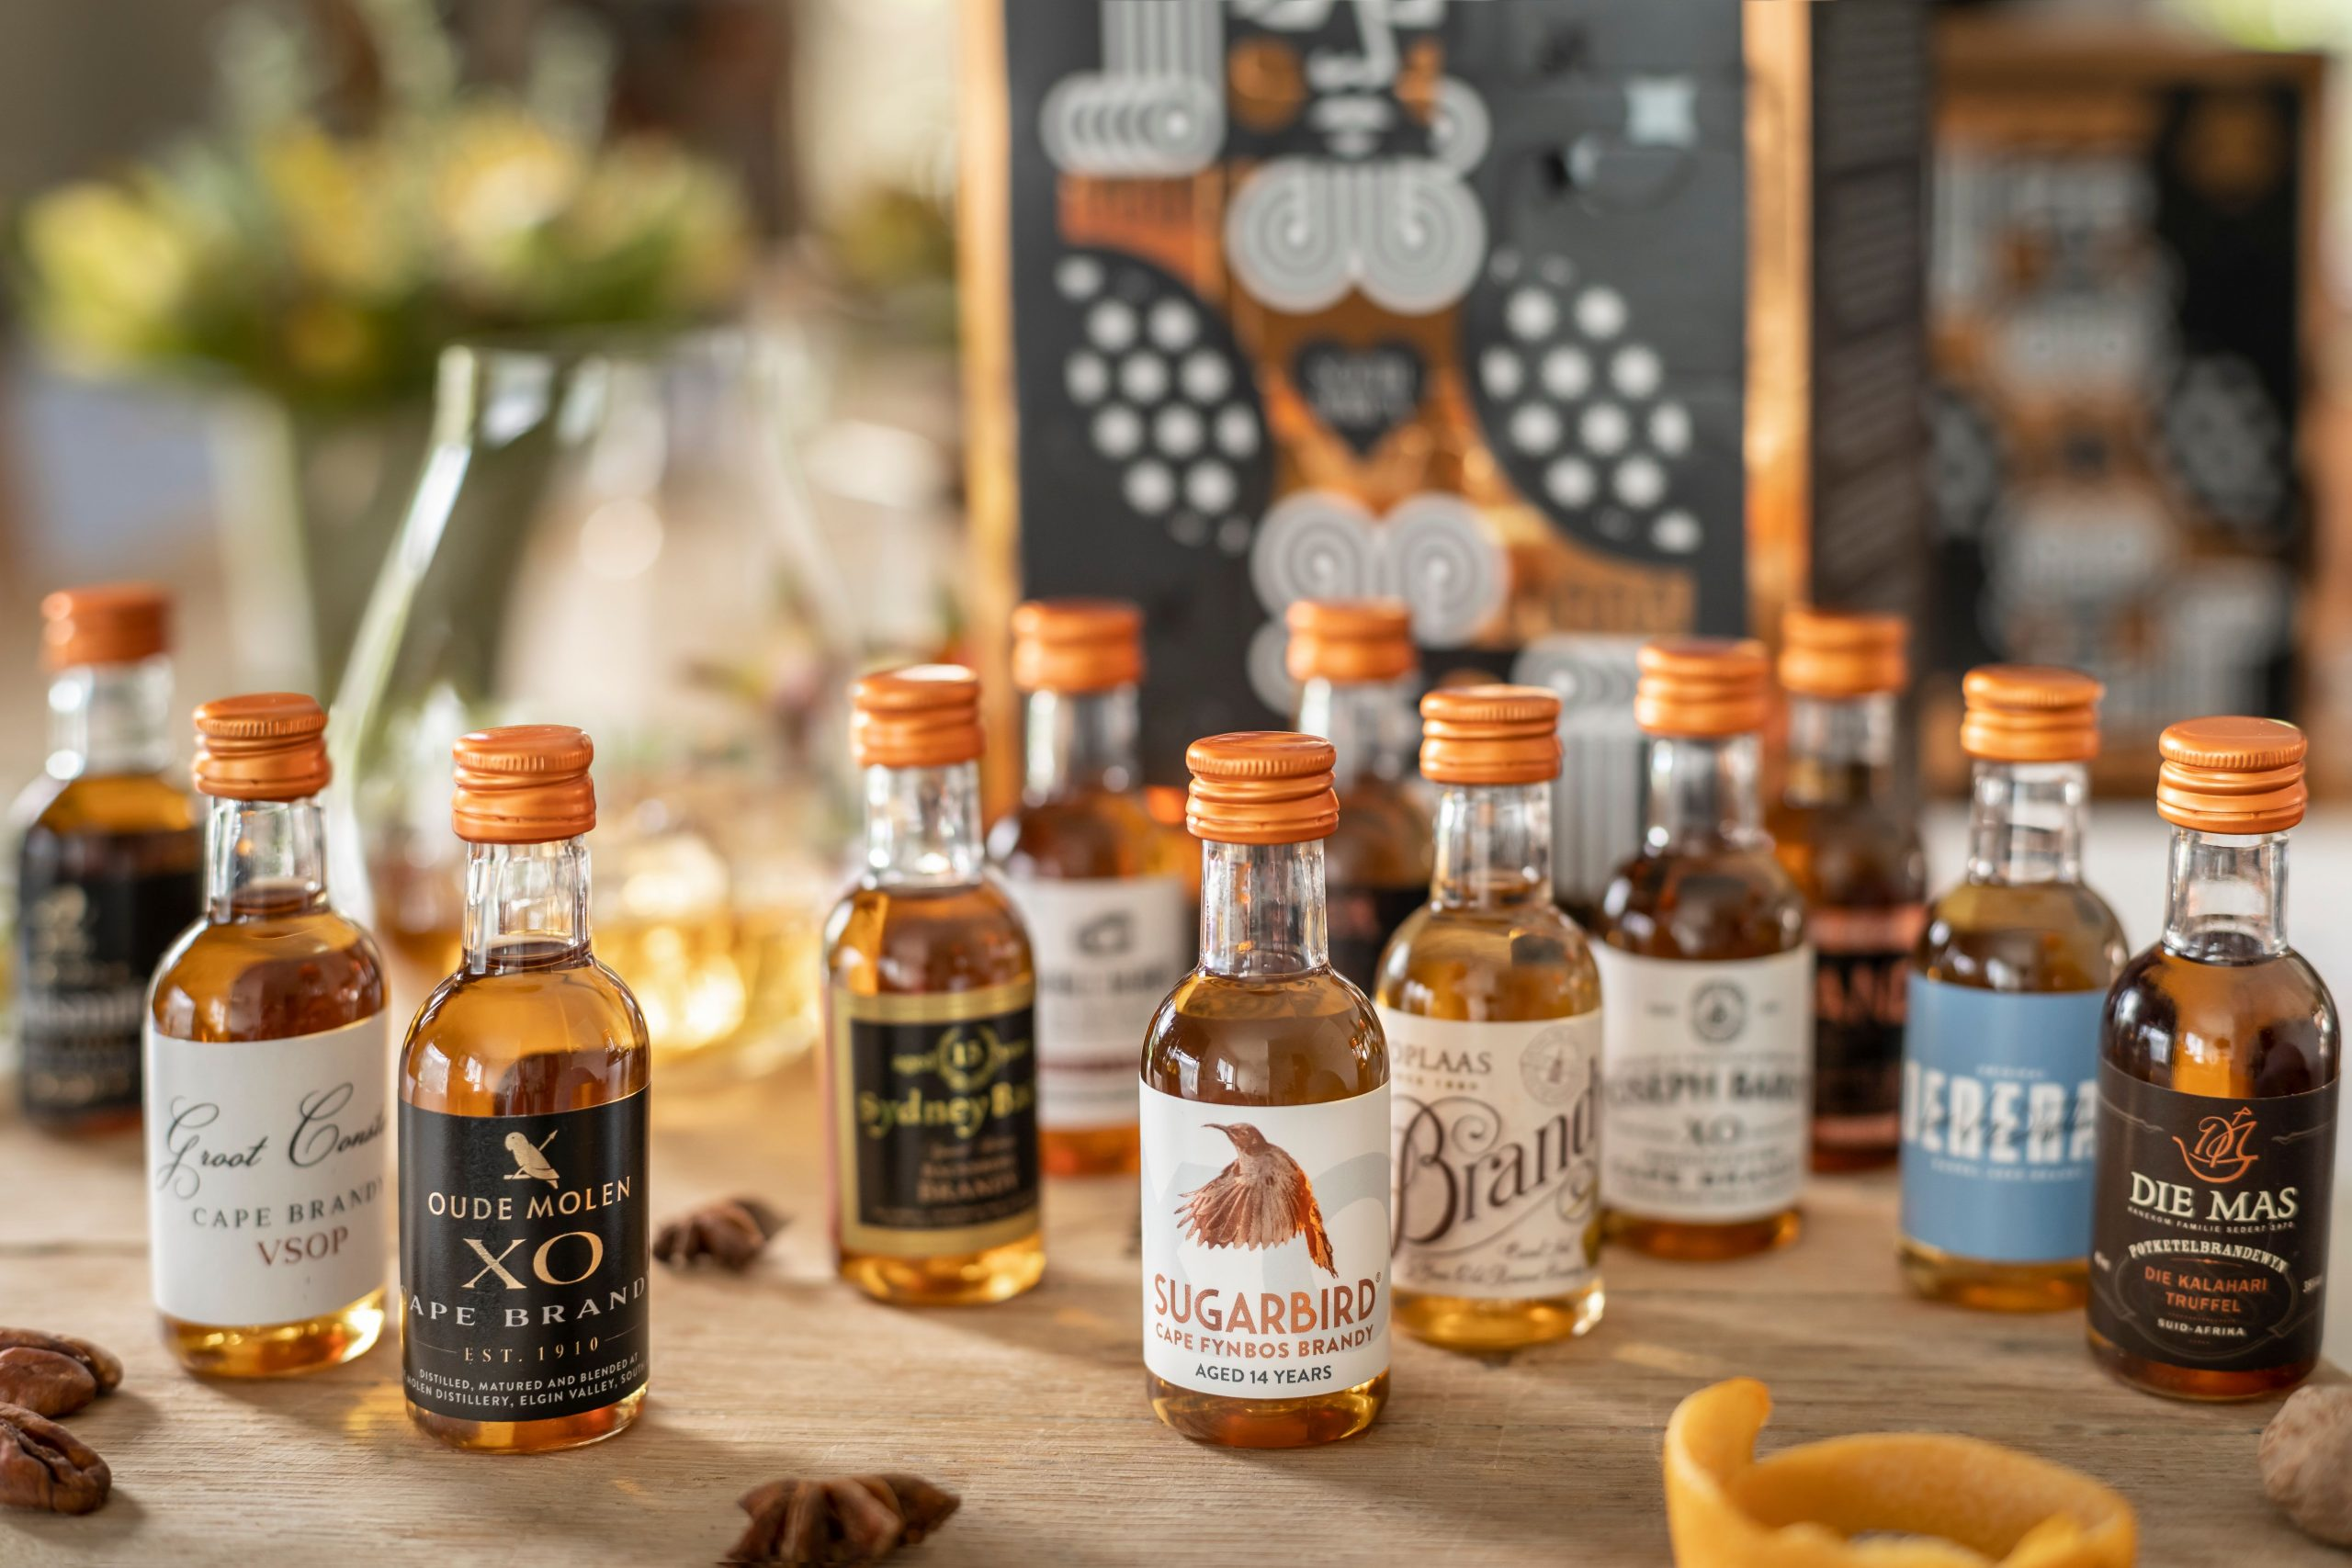 Sugarbird and Brandy Friends Showcase SA Distilling Heritage